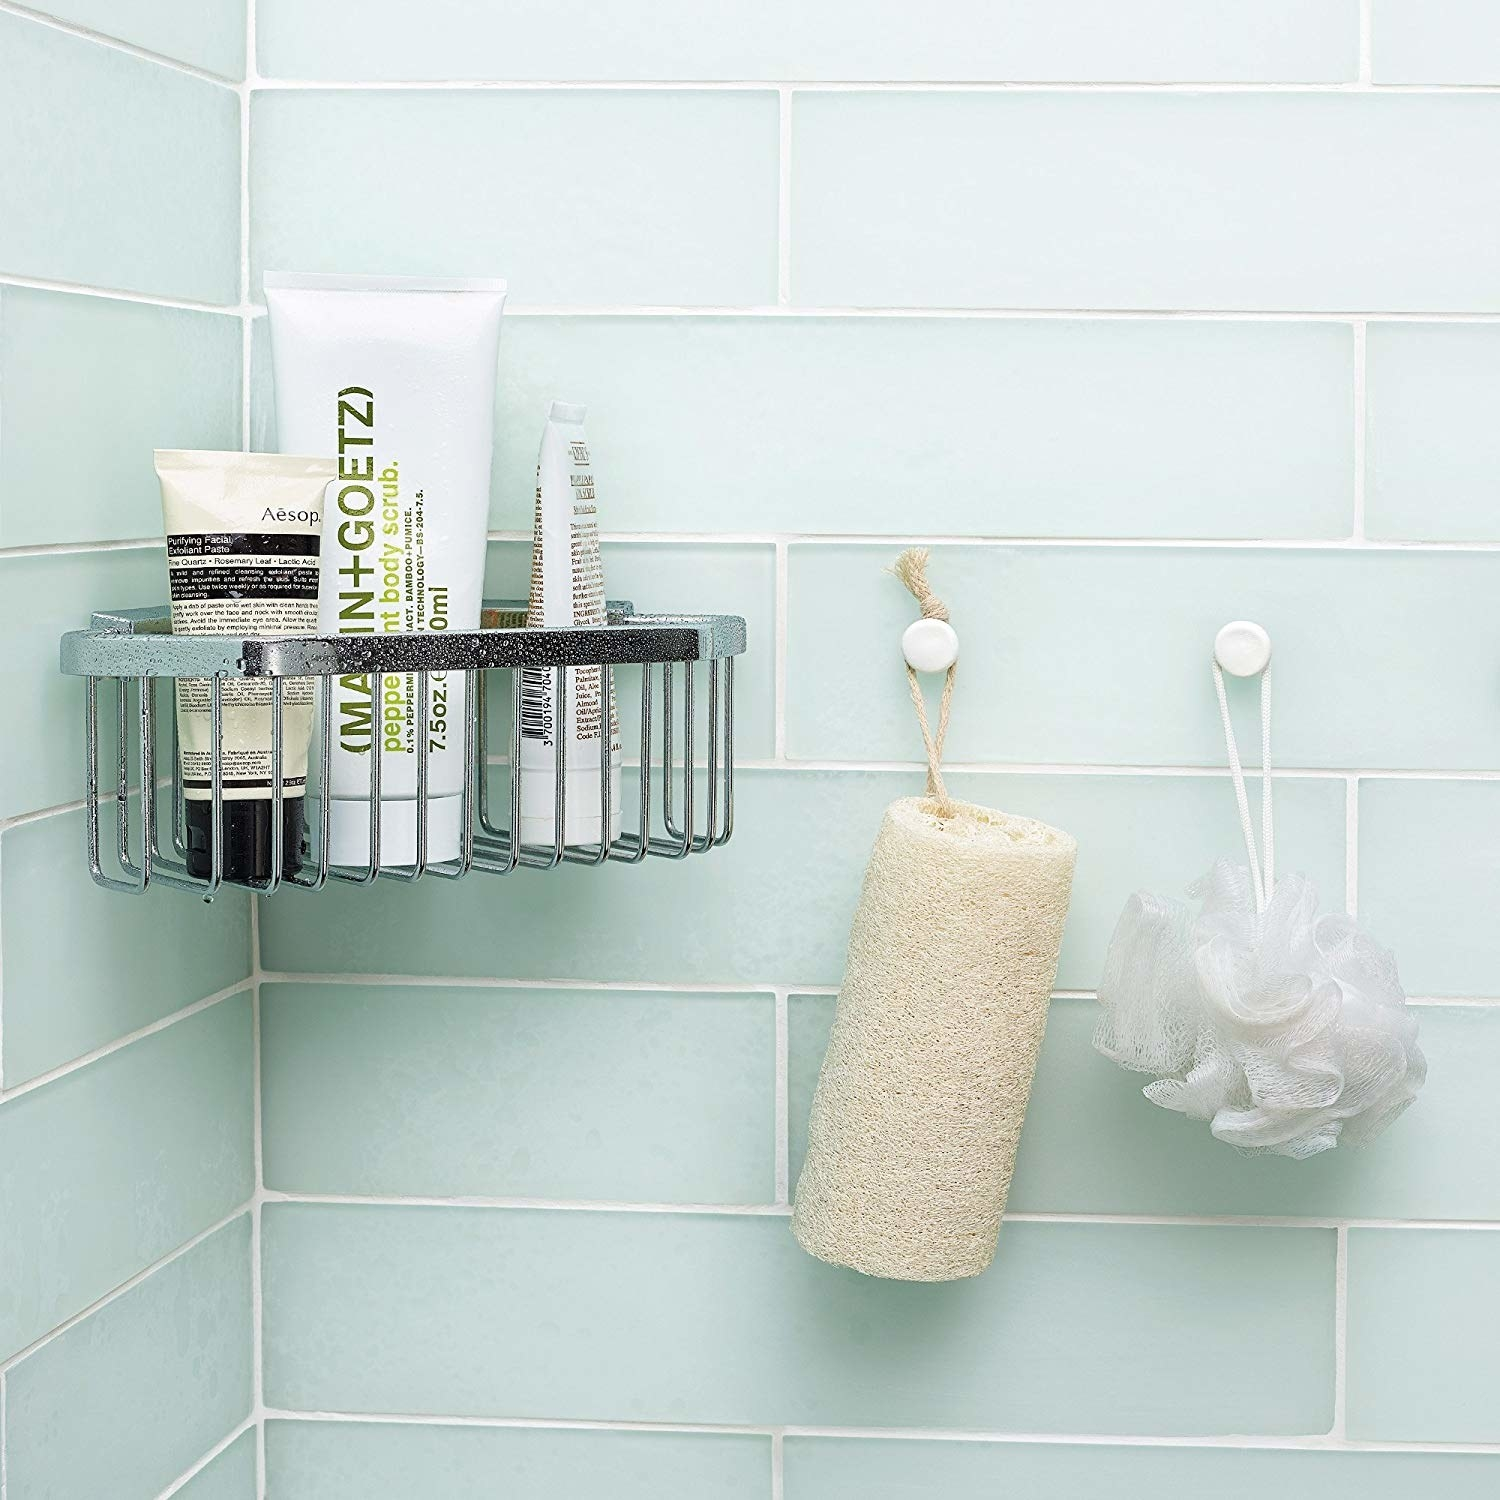 bathroom tile surround with caddy mounted on wall with the moldable glue